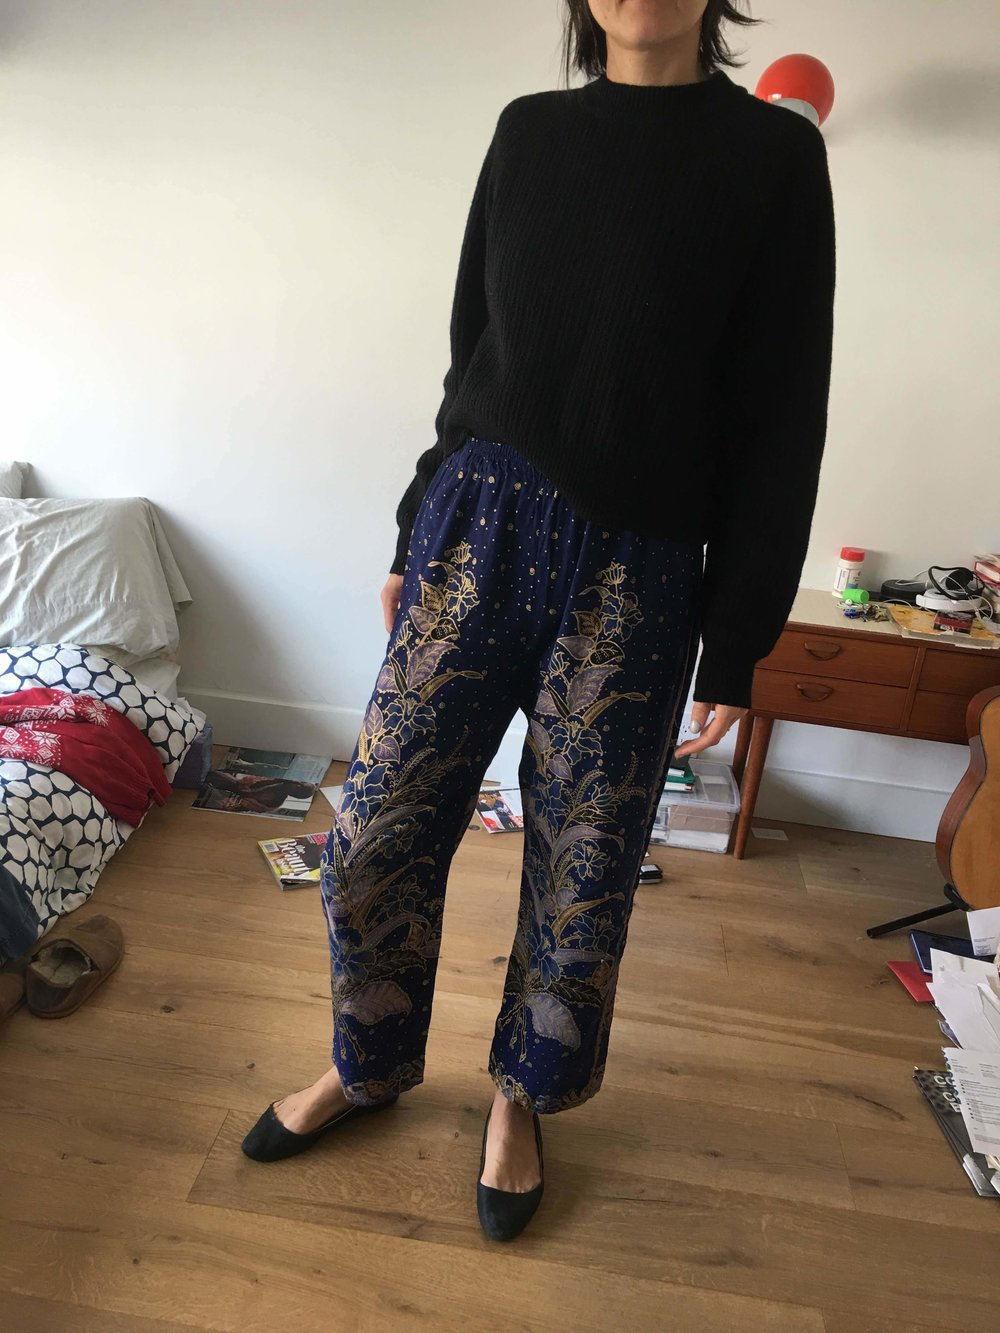 Client Example - The harem shape of these pants, along with their glitter gold embellishment, was very eye-catching. The black pairings calm down the bohemian style and make them more easy to wear everyday.